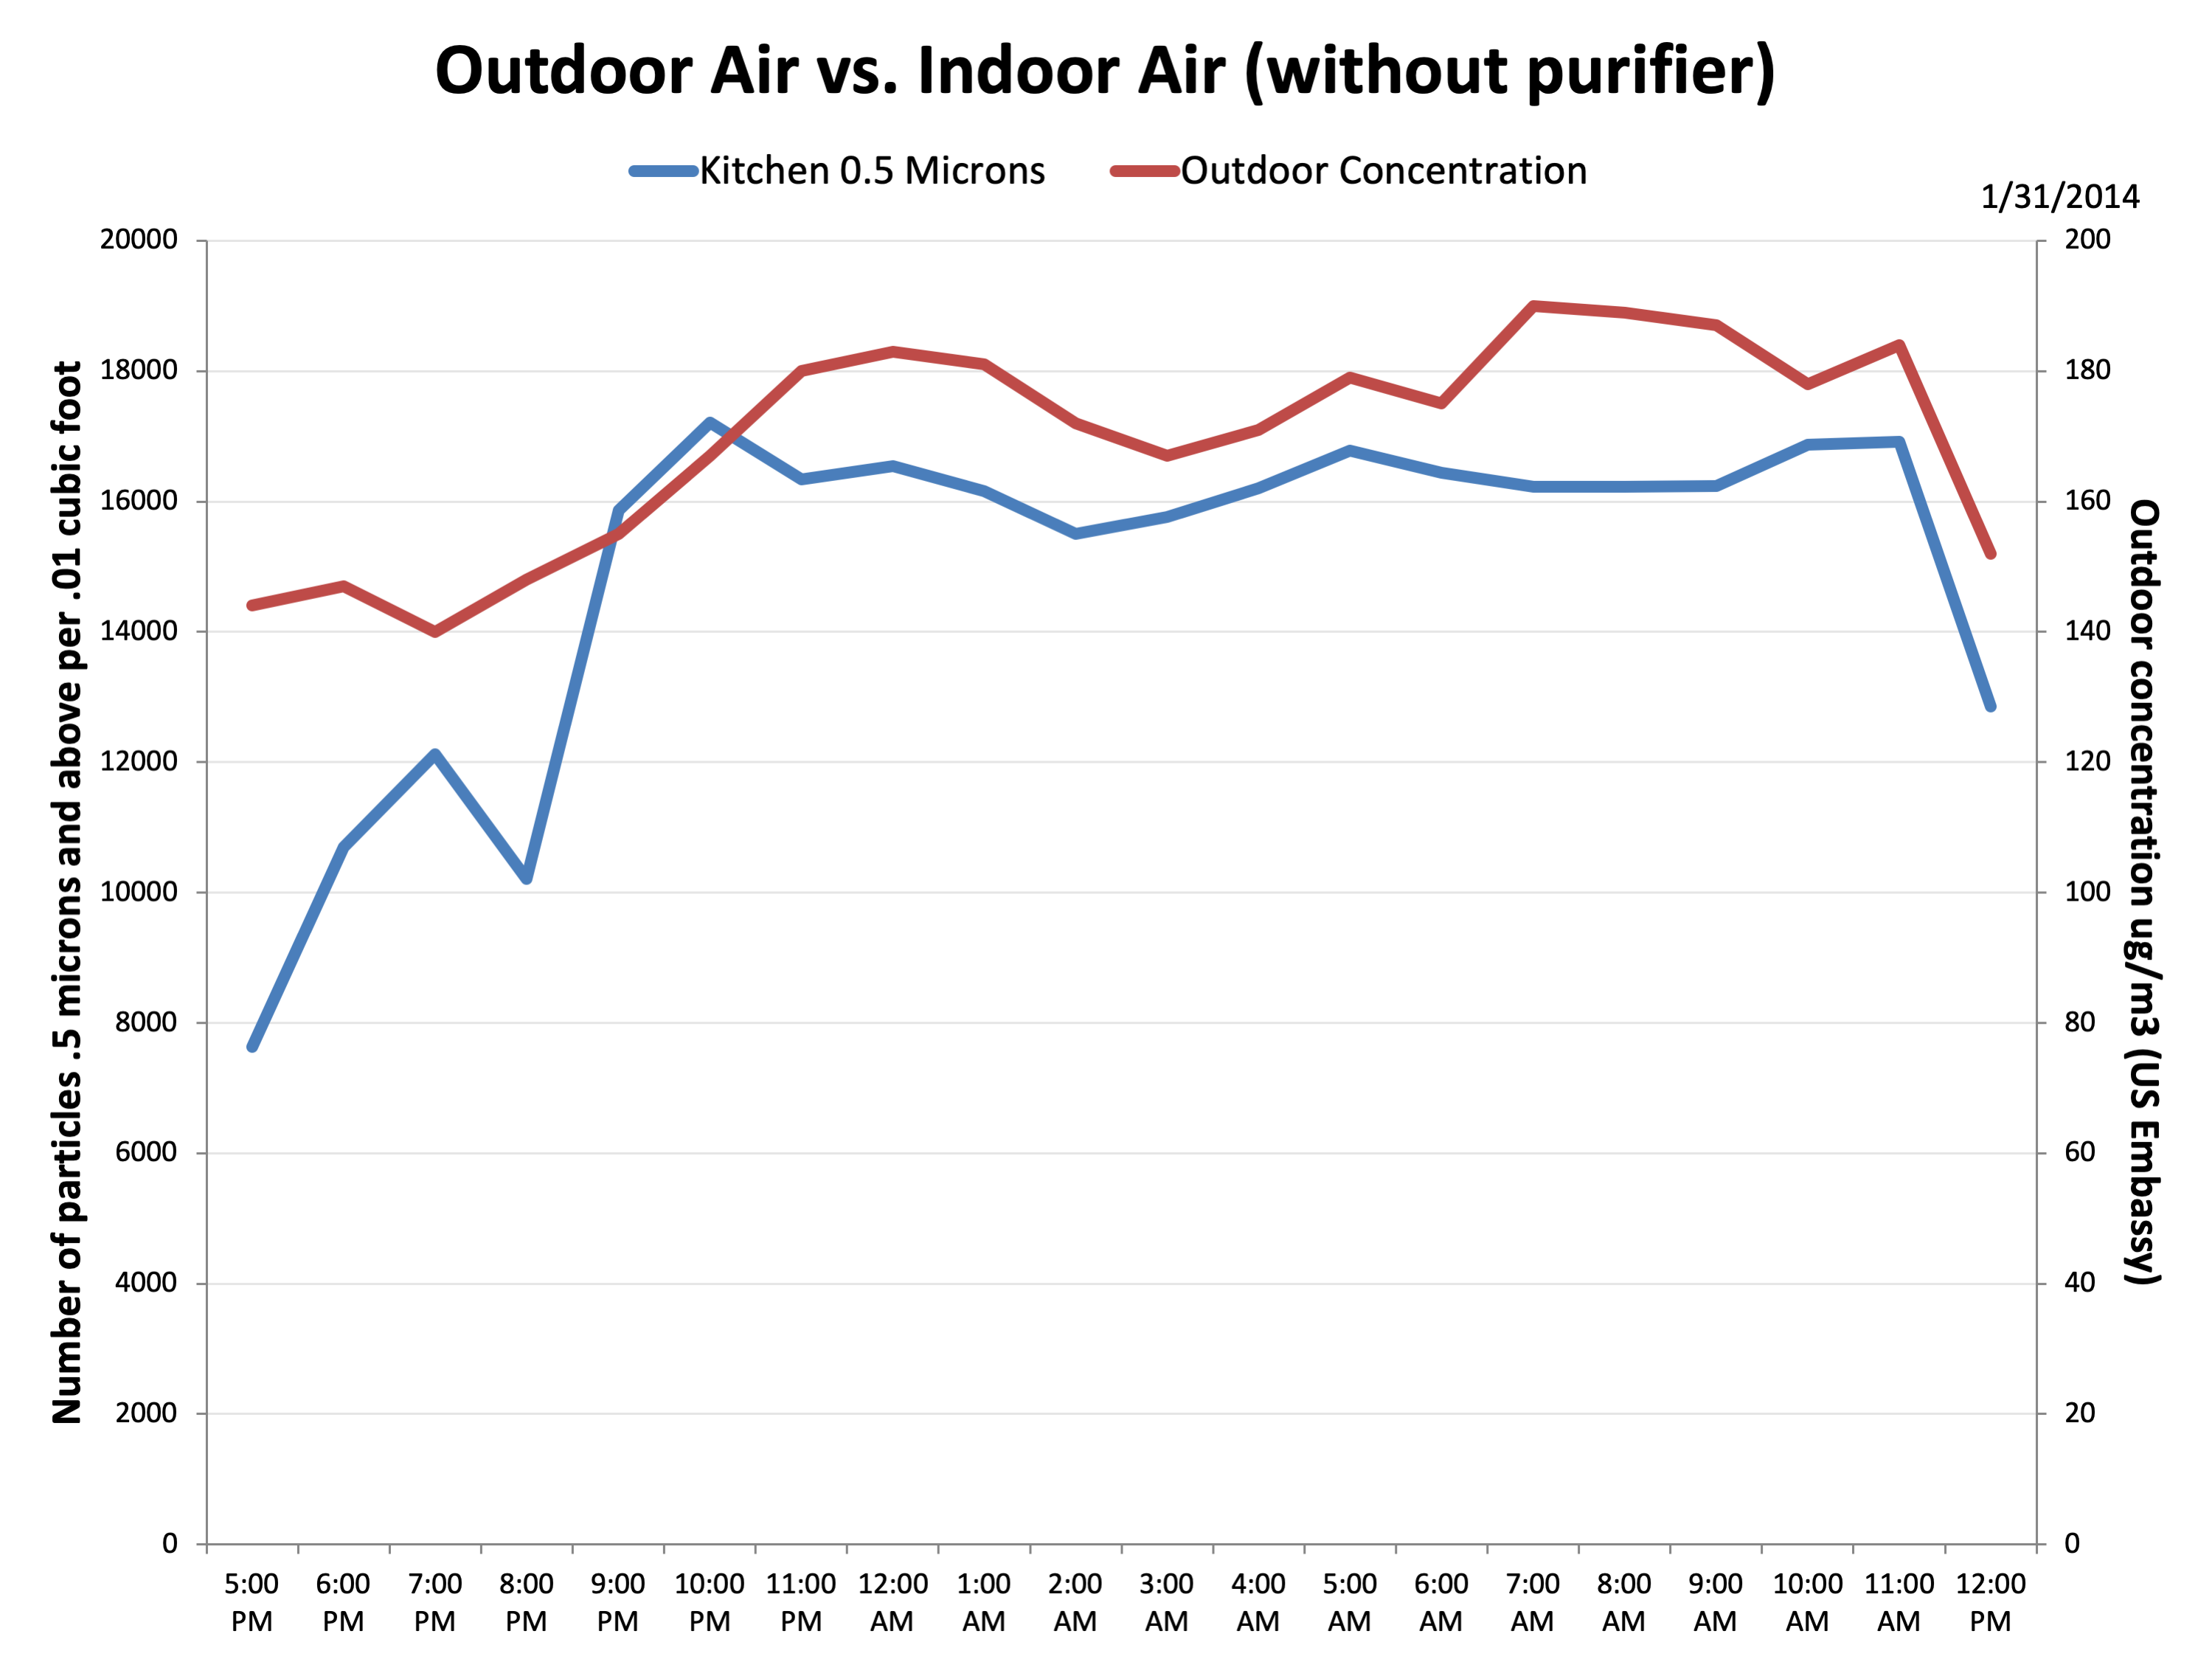 Indoor Air Pollution PM2.5 Versus Outdoors